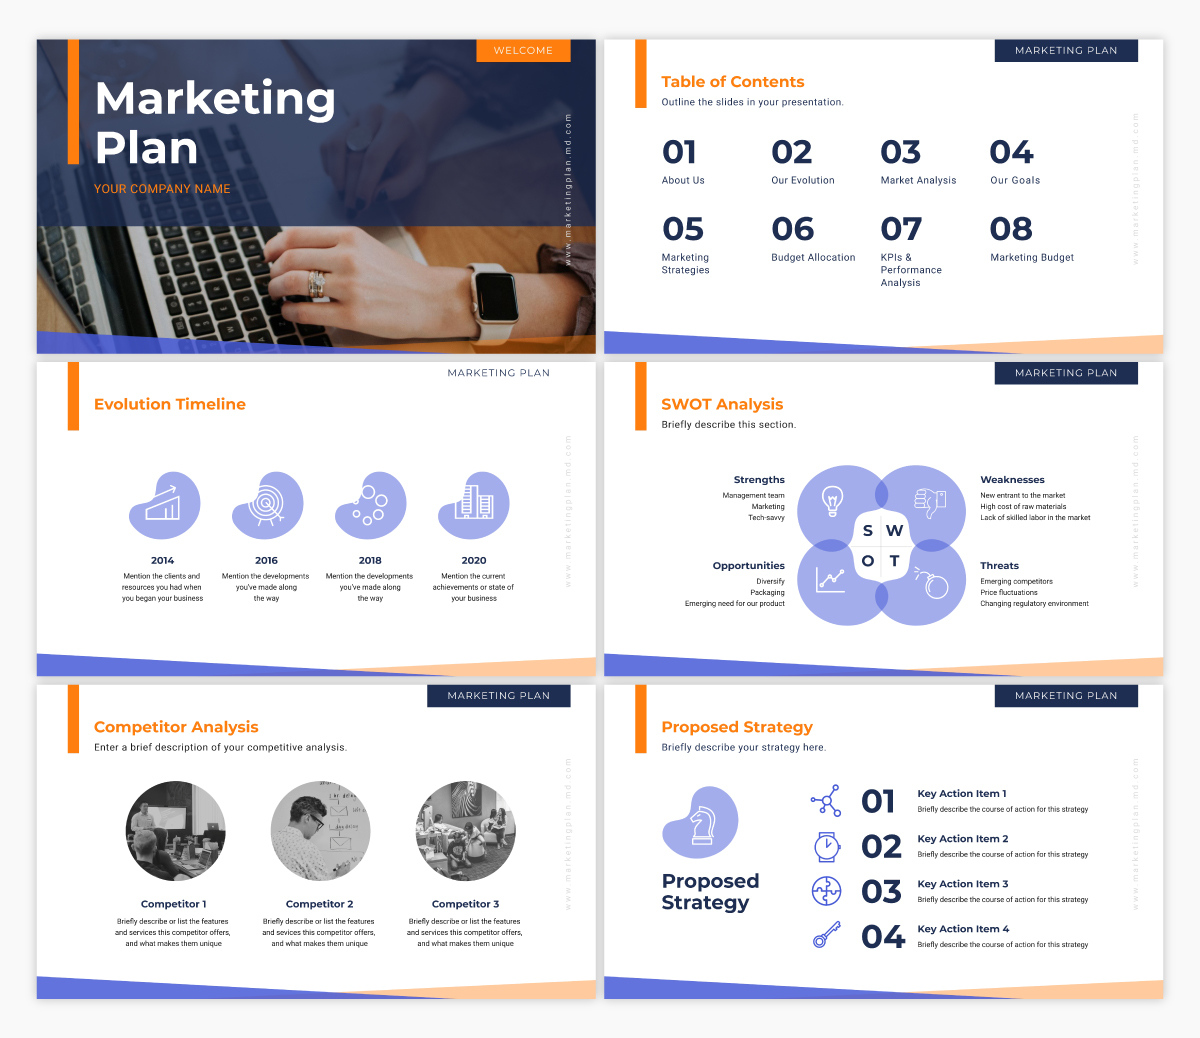 A marketing plan presentation template available in Visme.